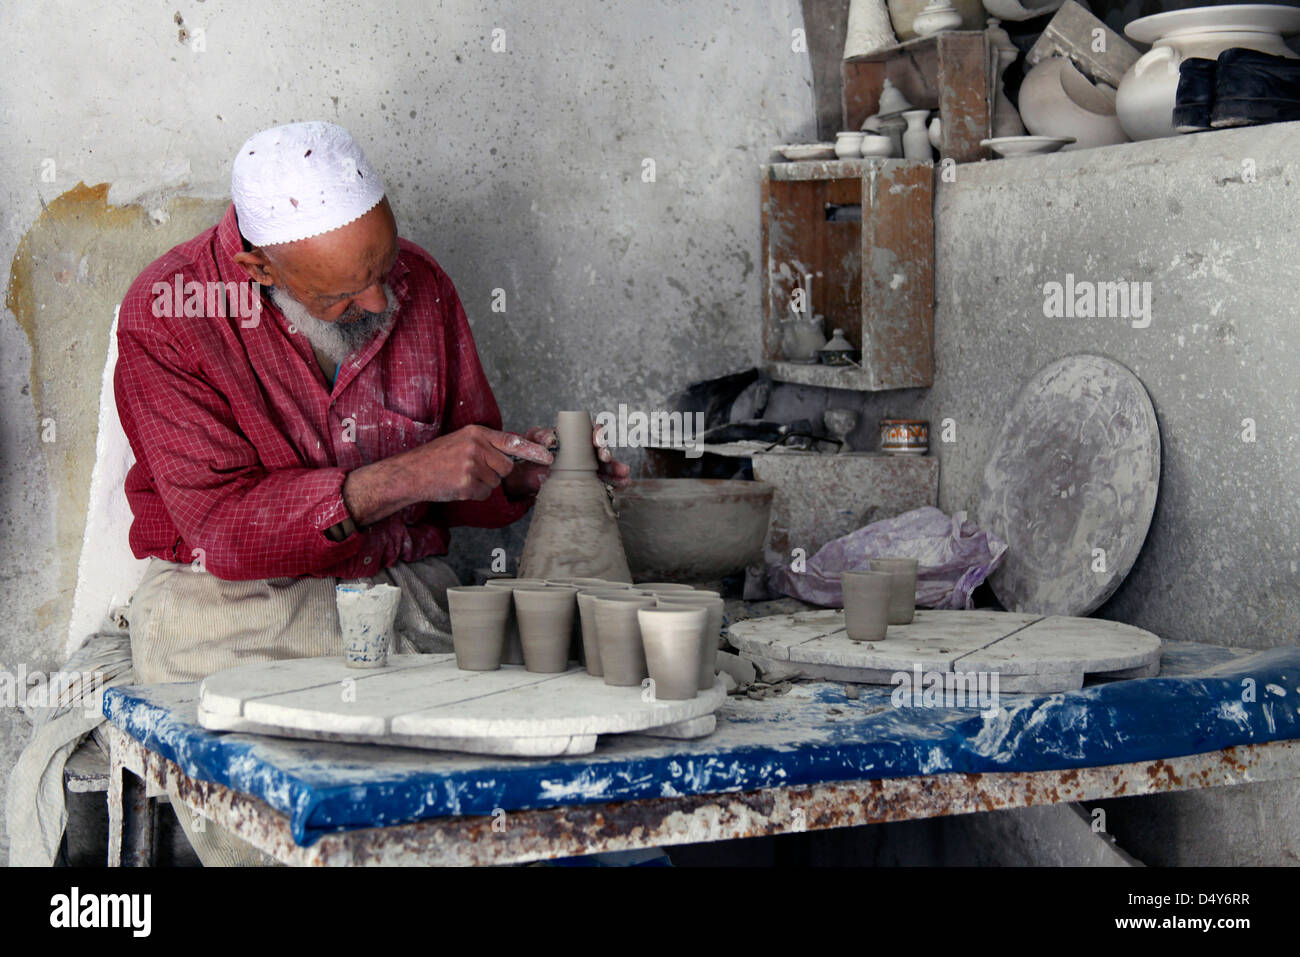 Africa, Morocco, Fes. Ceramic Artisan of Fes. - Stock Image